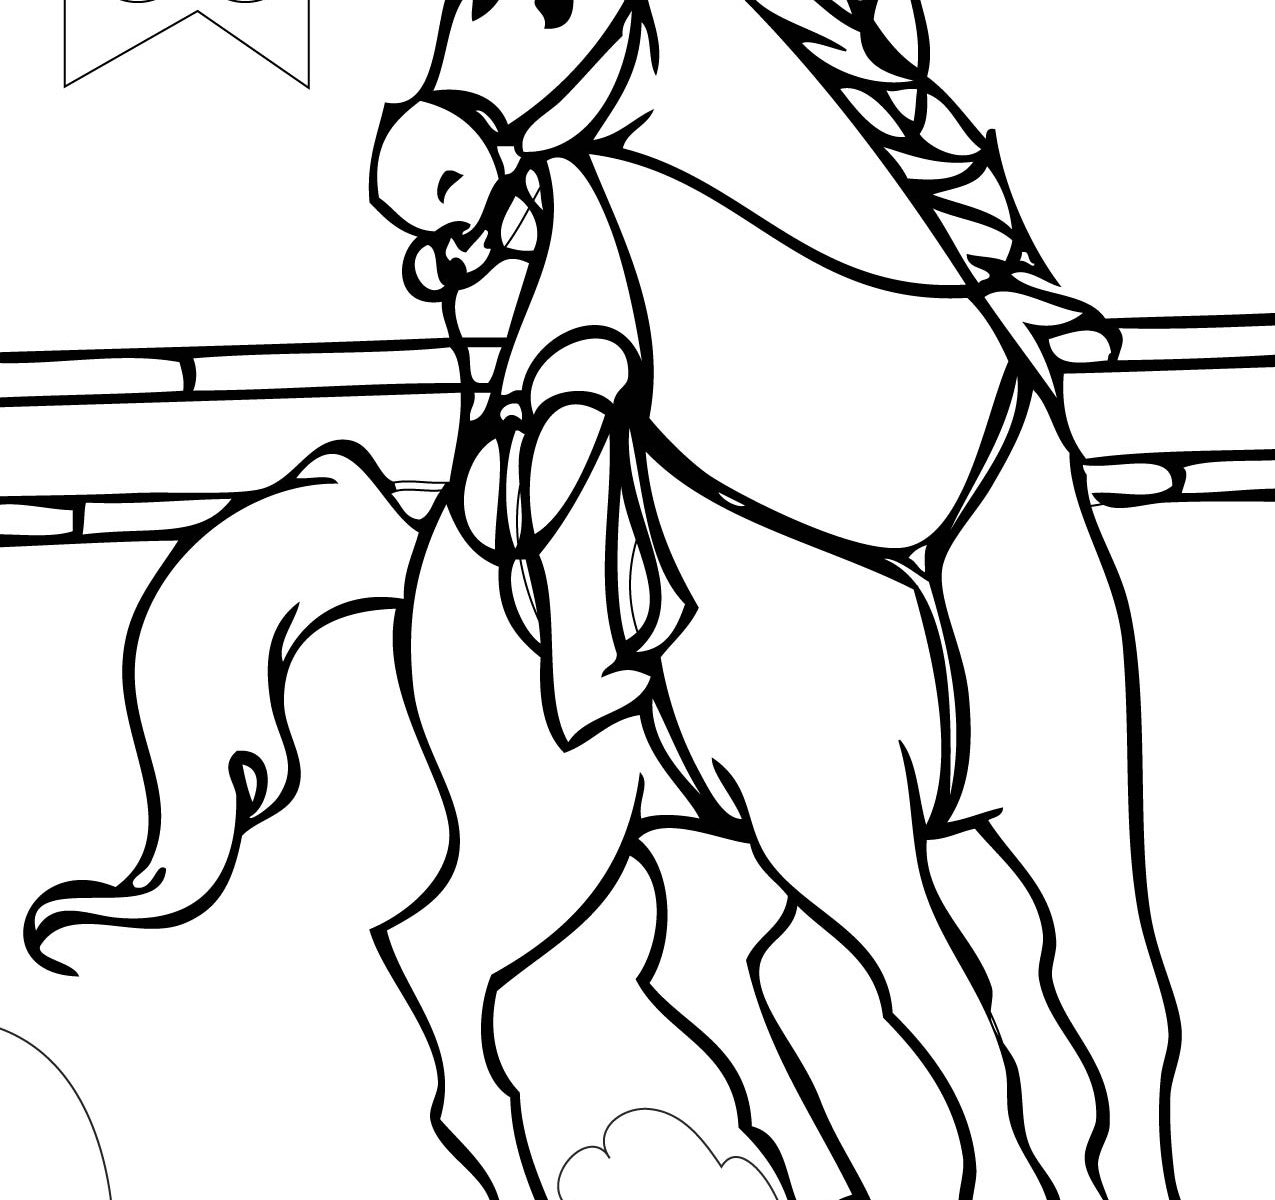 1275x1200 Summer Olympics Coloring Page Pole Pages For Kids Printable Sports